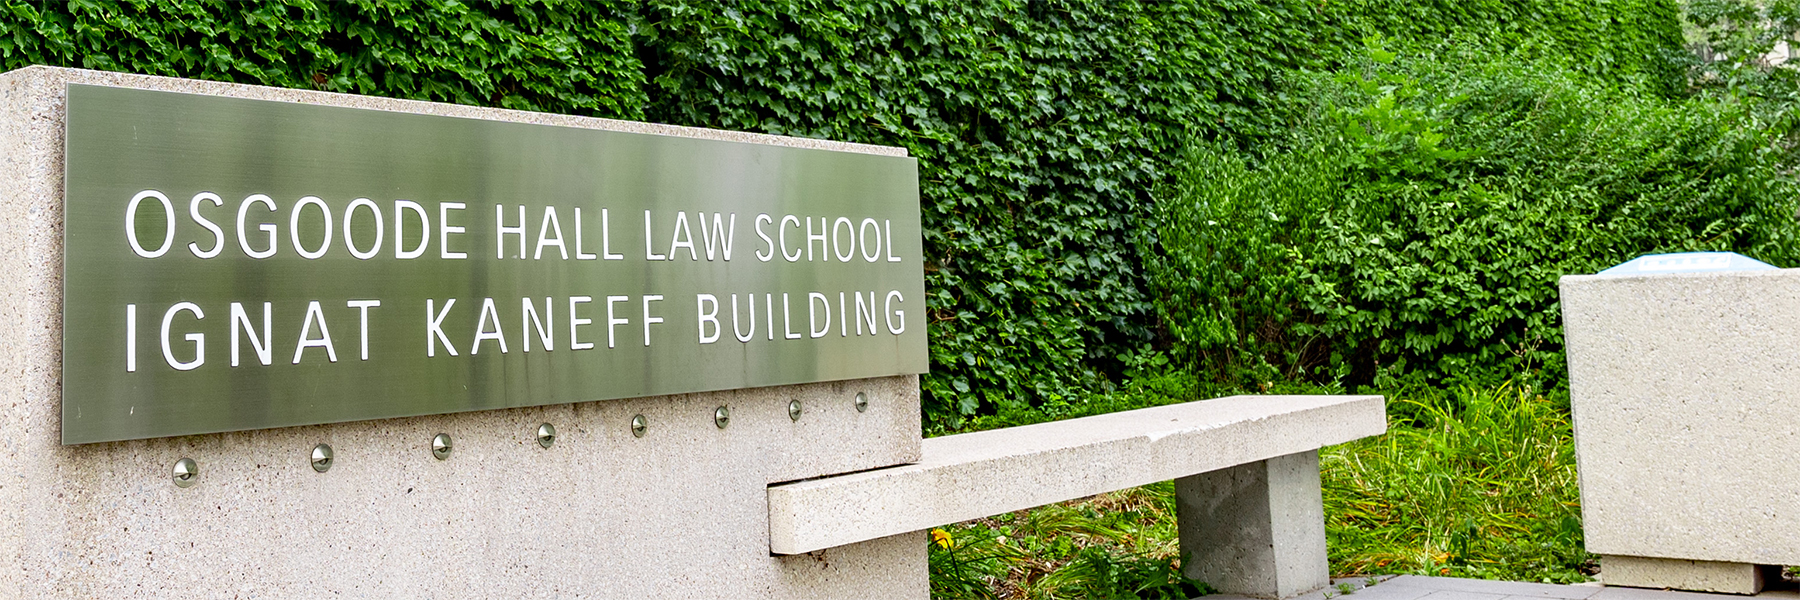 Osgoode Hall Law School entrance to the Ignat Kaneff building